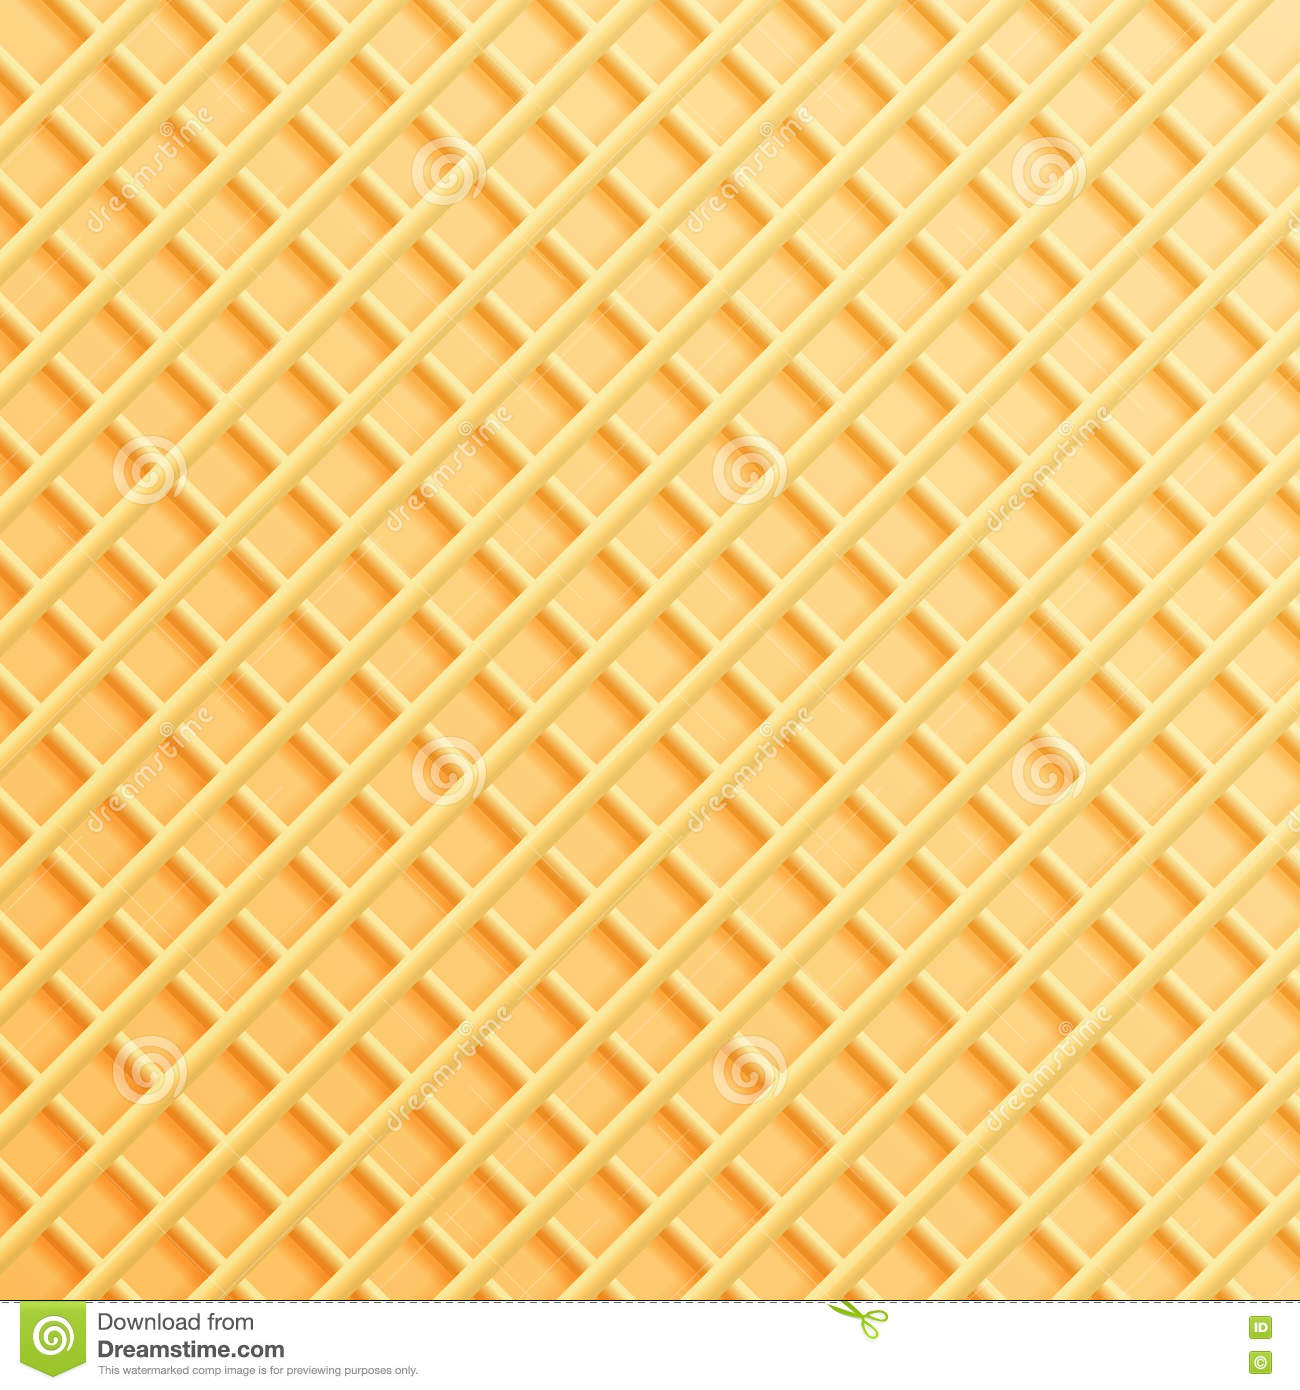 Wafer texture background. stock vector. Illustration of ...